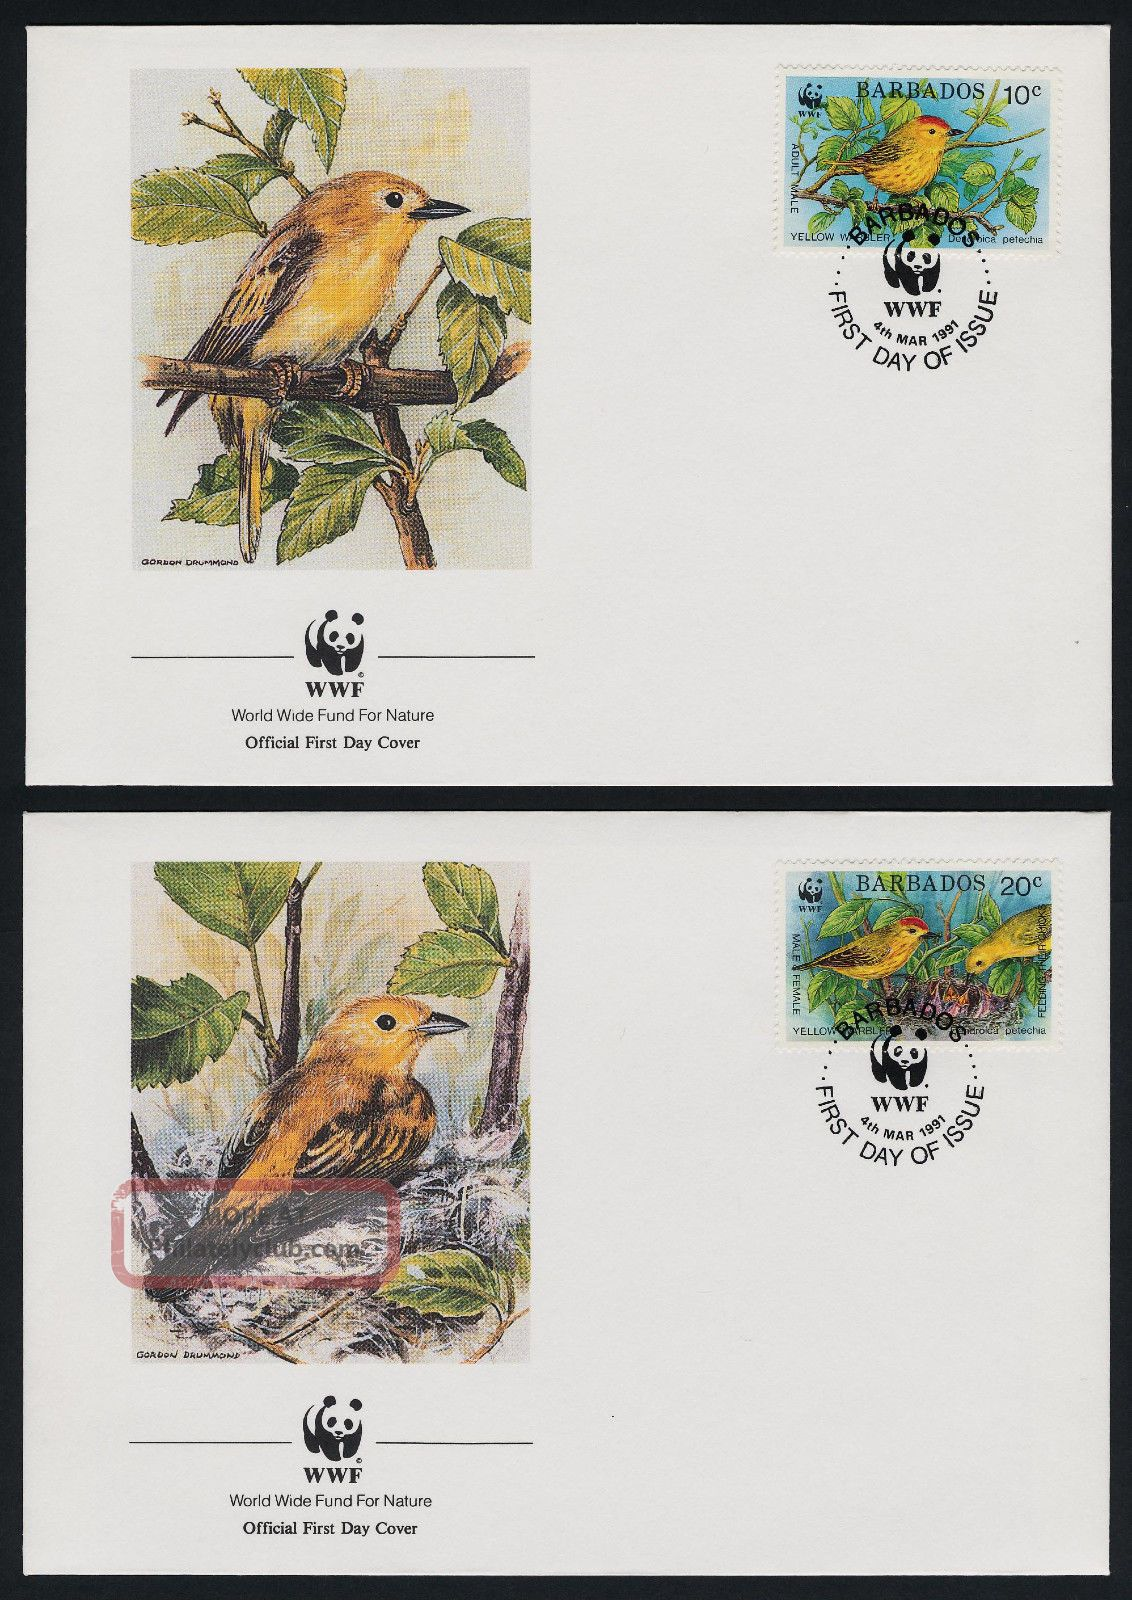 Barbados 795 - 8 Fdc ' S Wwf,  Birds,  Insects British Colonies & Territories photo